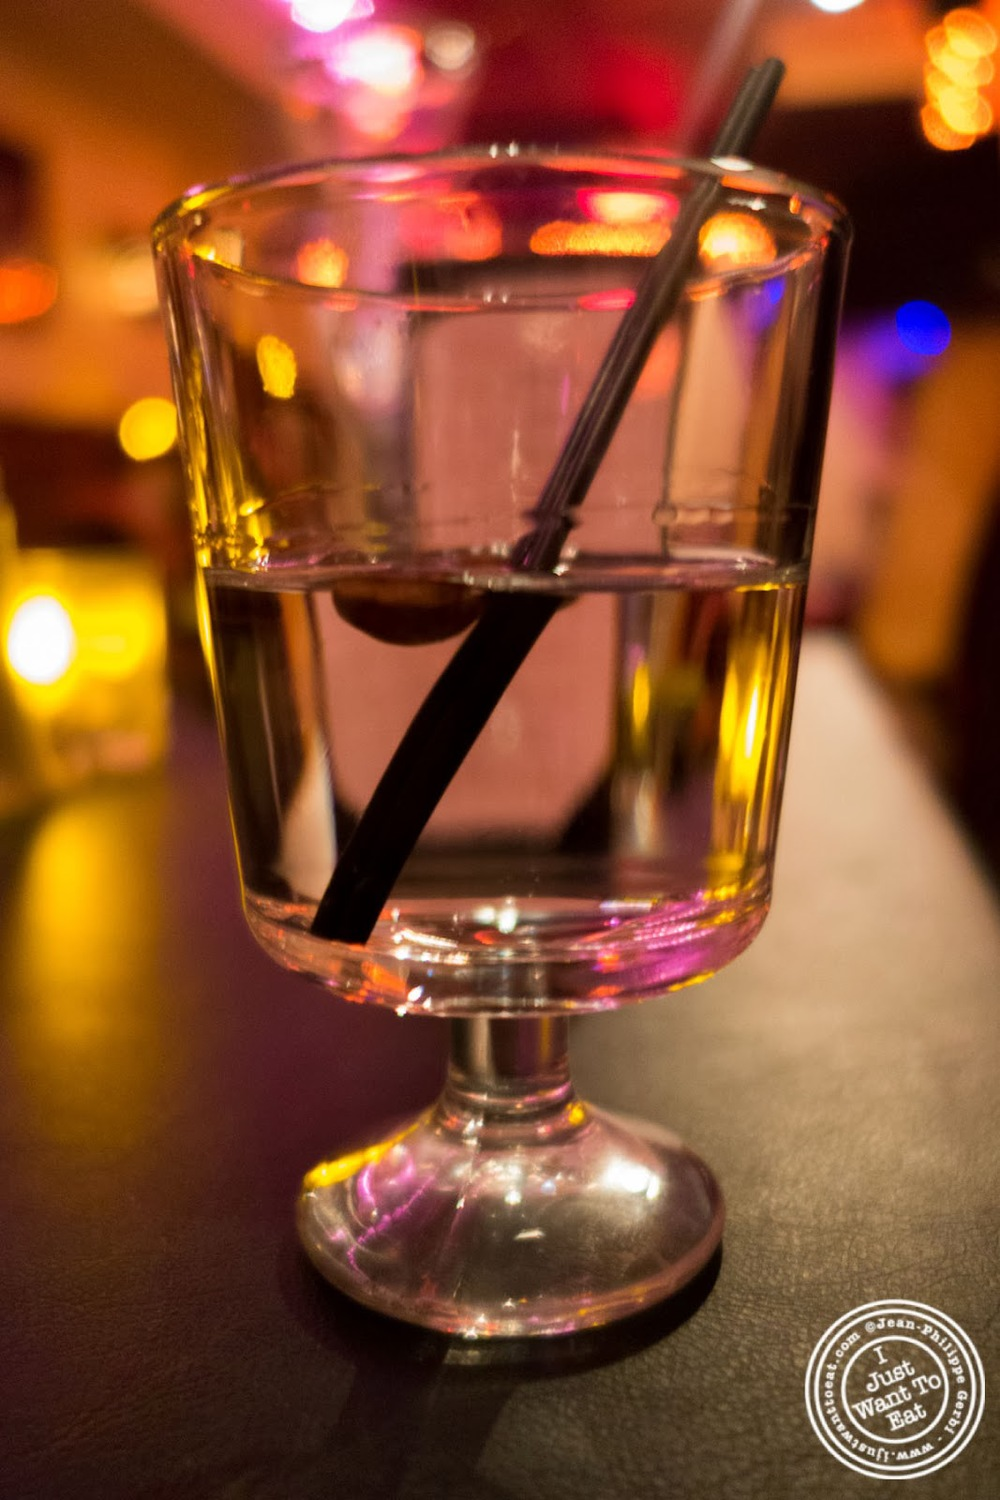 image of Sambuca at MASQ New Orleans inspired cuisine in NYC, New York